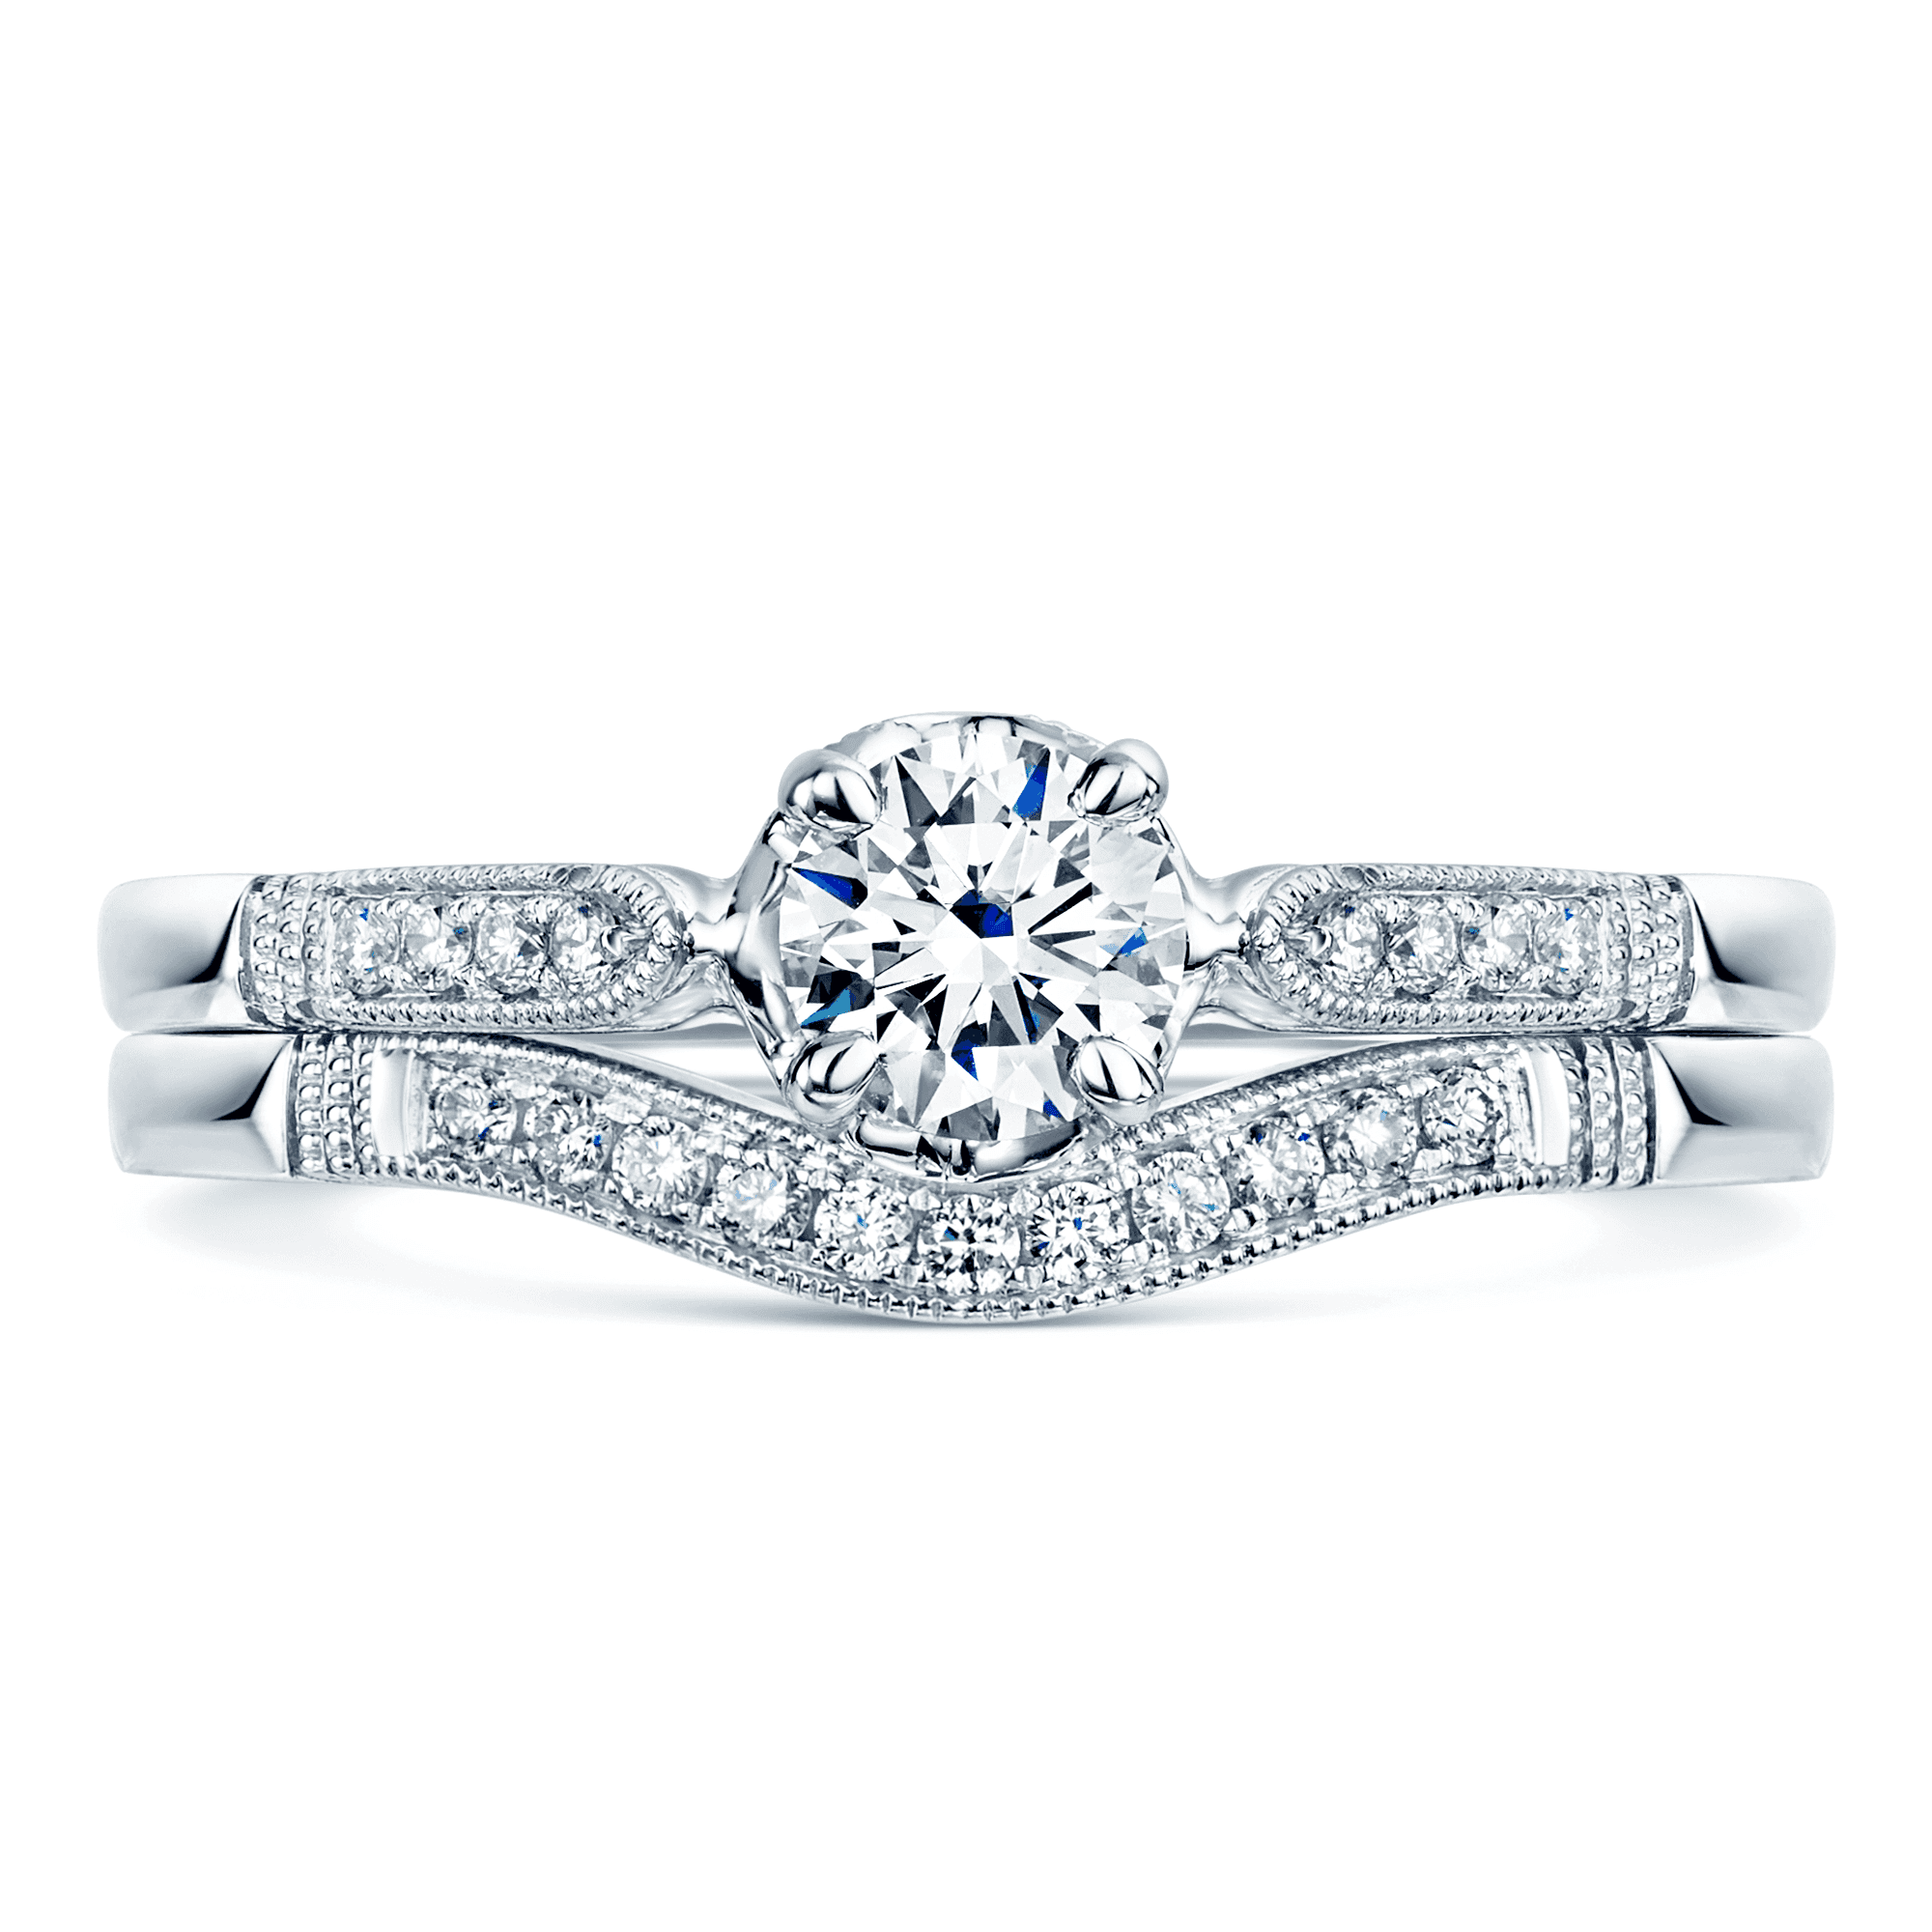 Platinum Pave Set Diamond Bridal Engagement And Wedding Ring Set